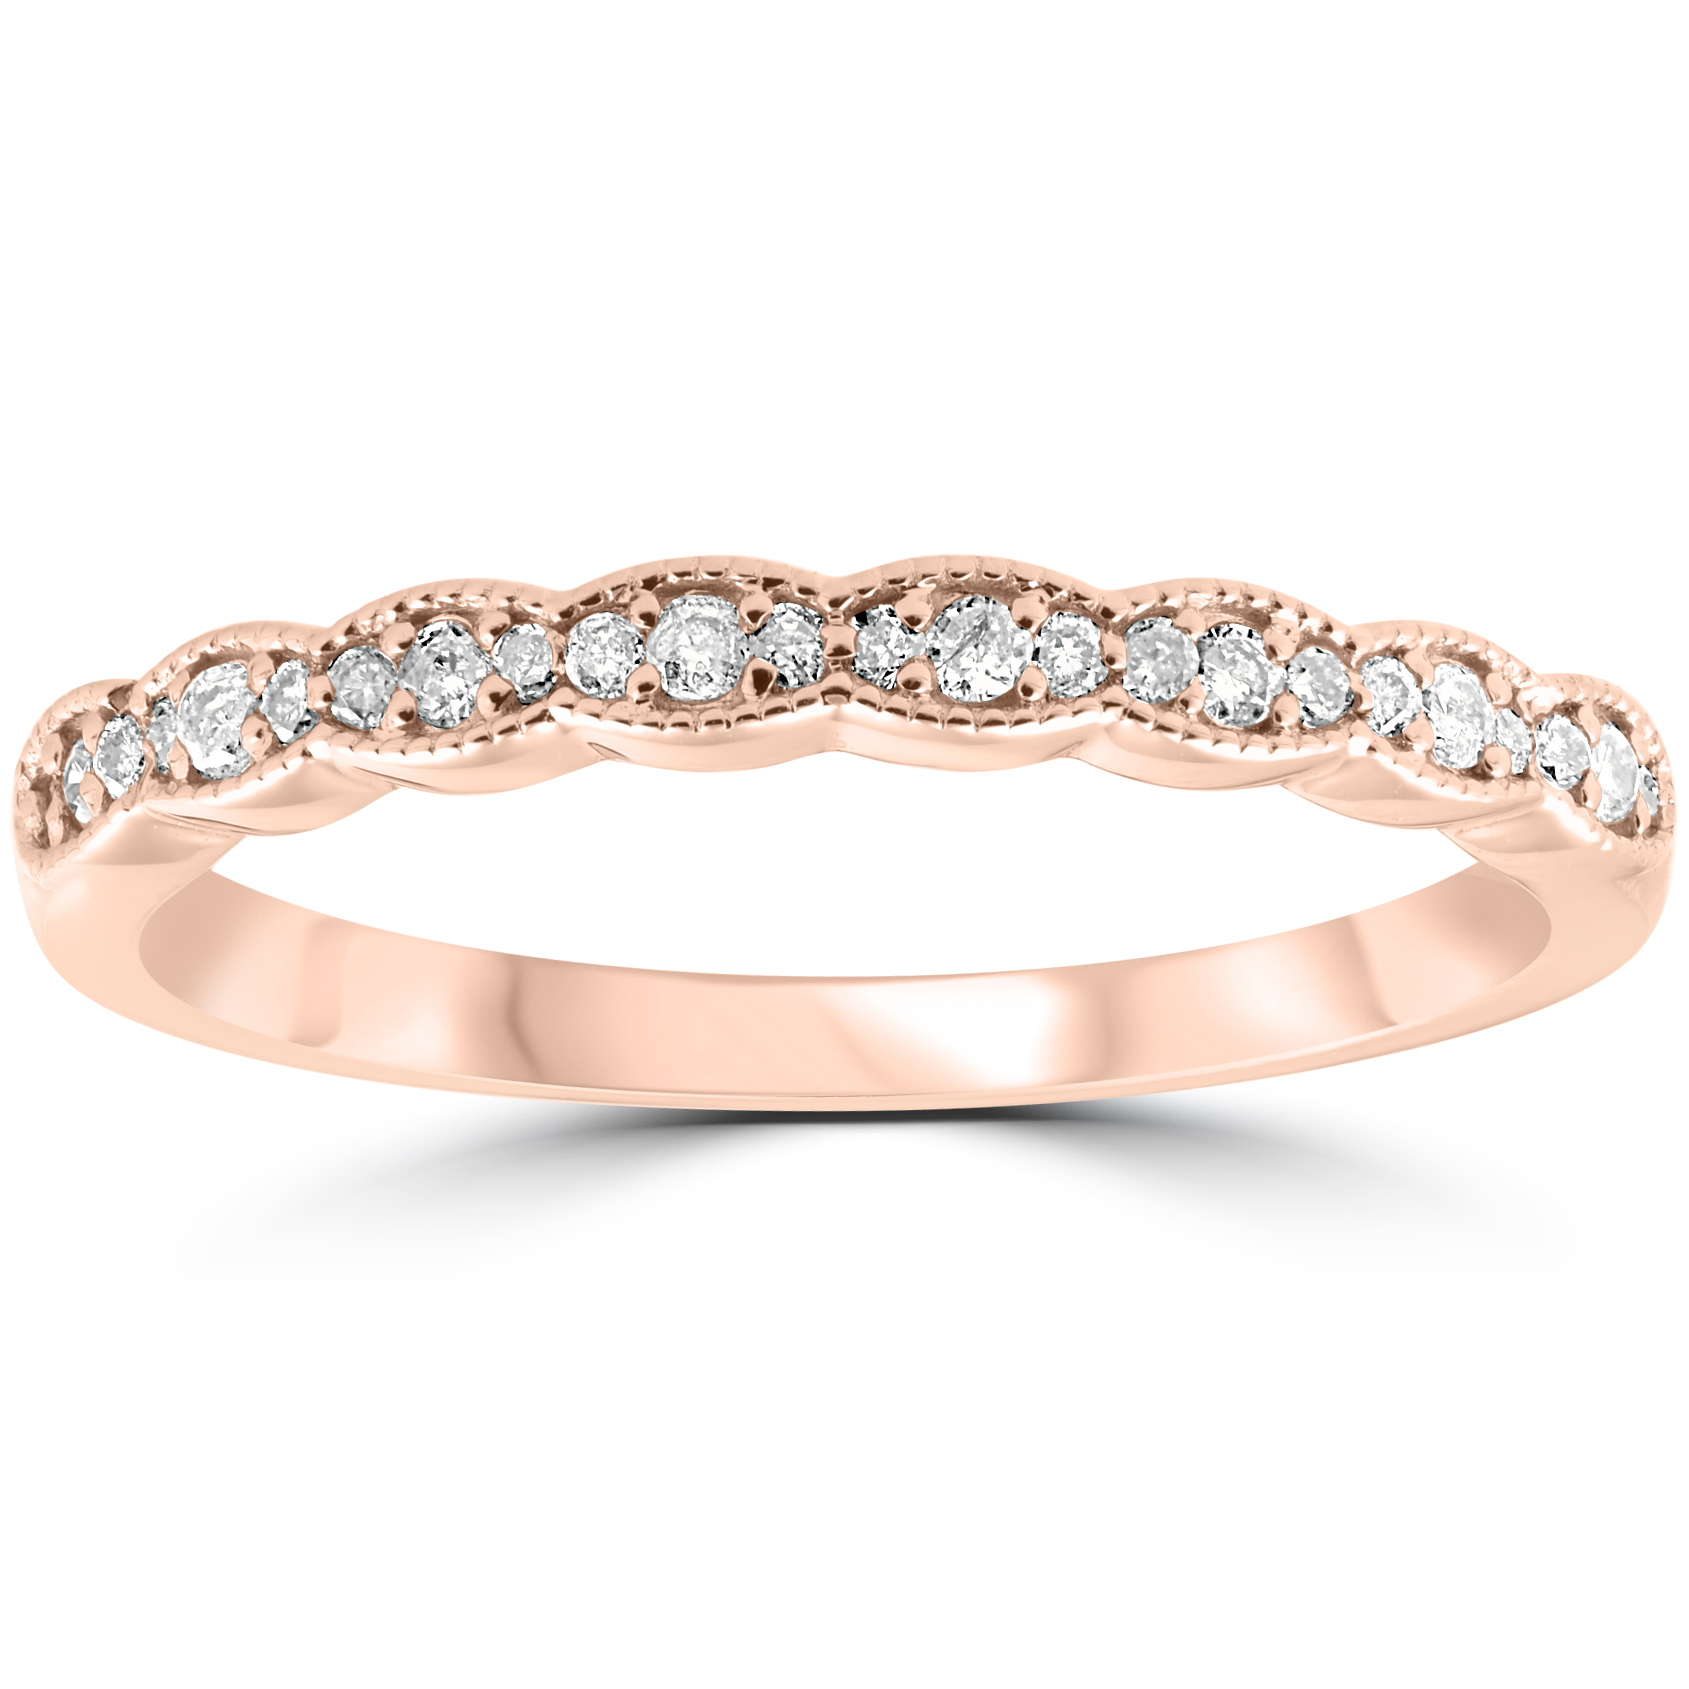 1 5 cttw diamond stackable womens wedding ring 14k rose gold. Black Bedroom Furniture Sets. Home Design Ideas